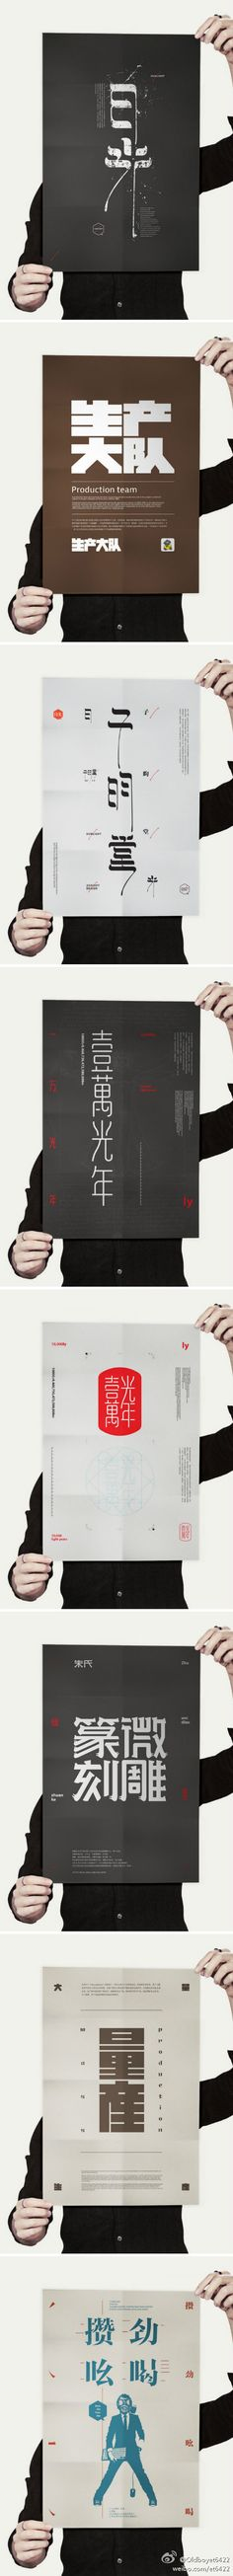 Font design microblogging Sina - anytime, anywhere to share around unfamiliar